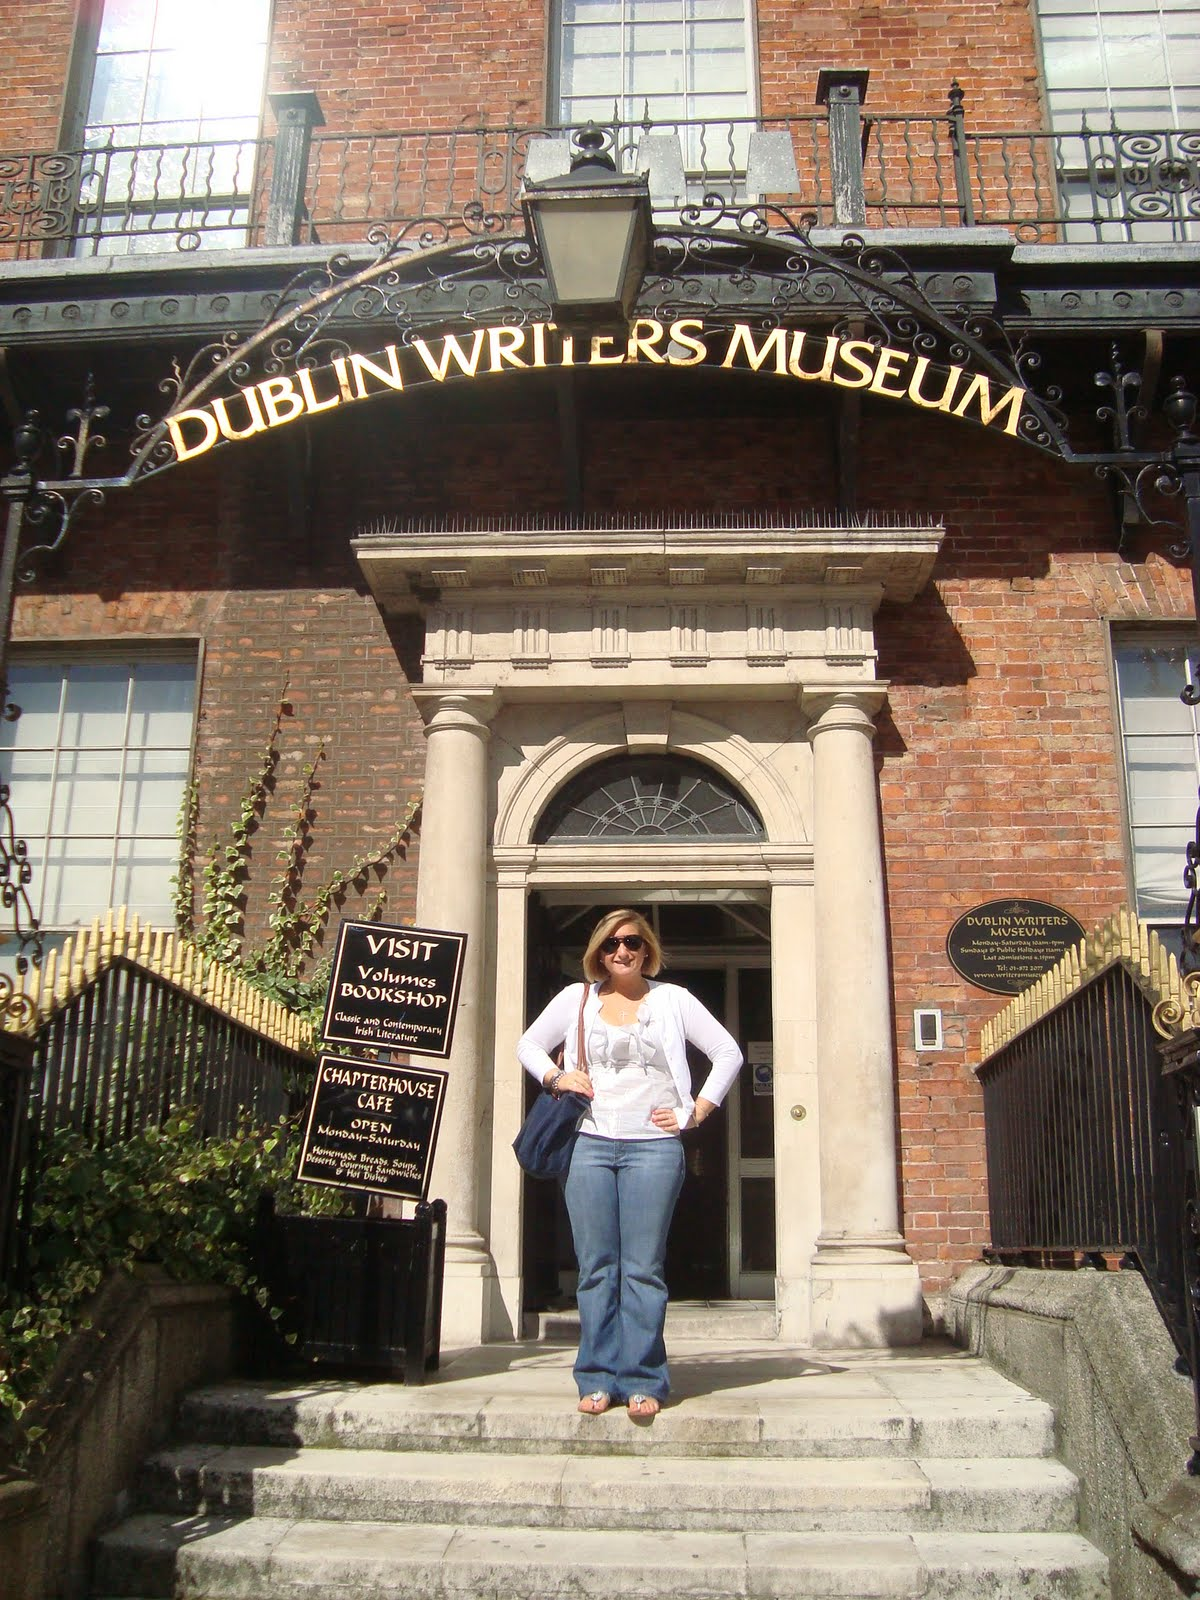 Kate's Dublin Adventure: Dublin Writers Museum and The National ...